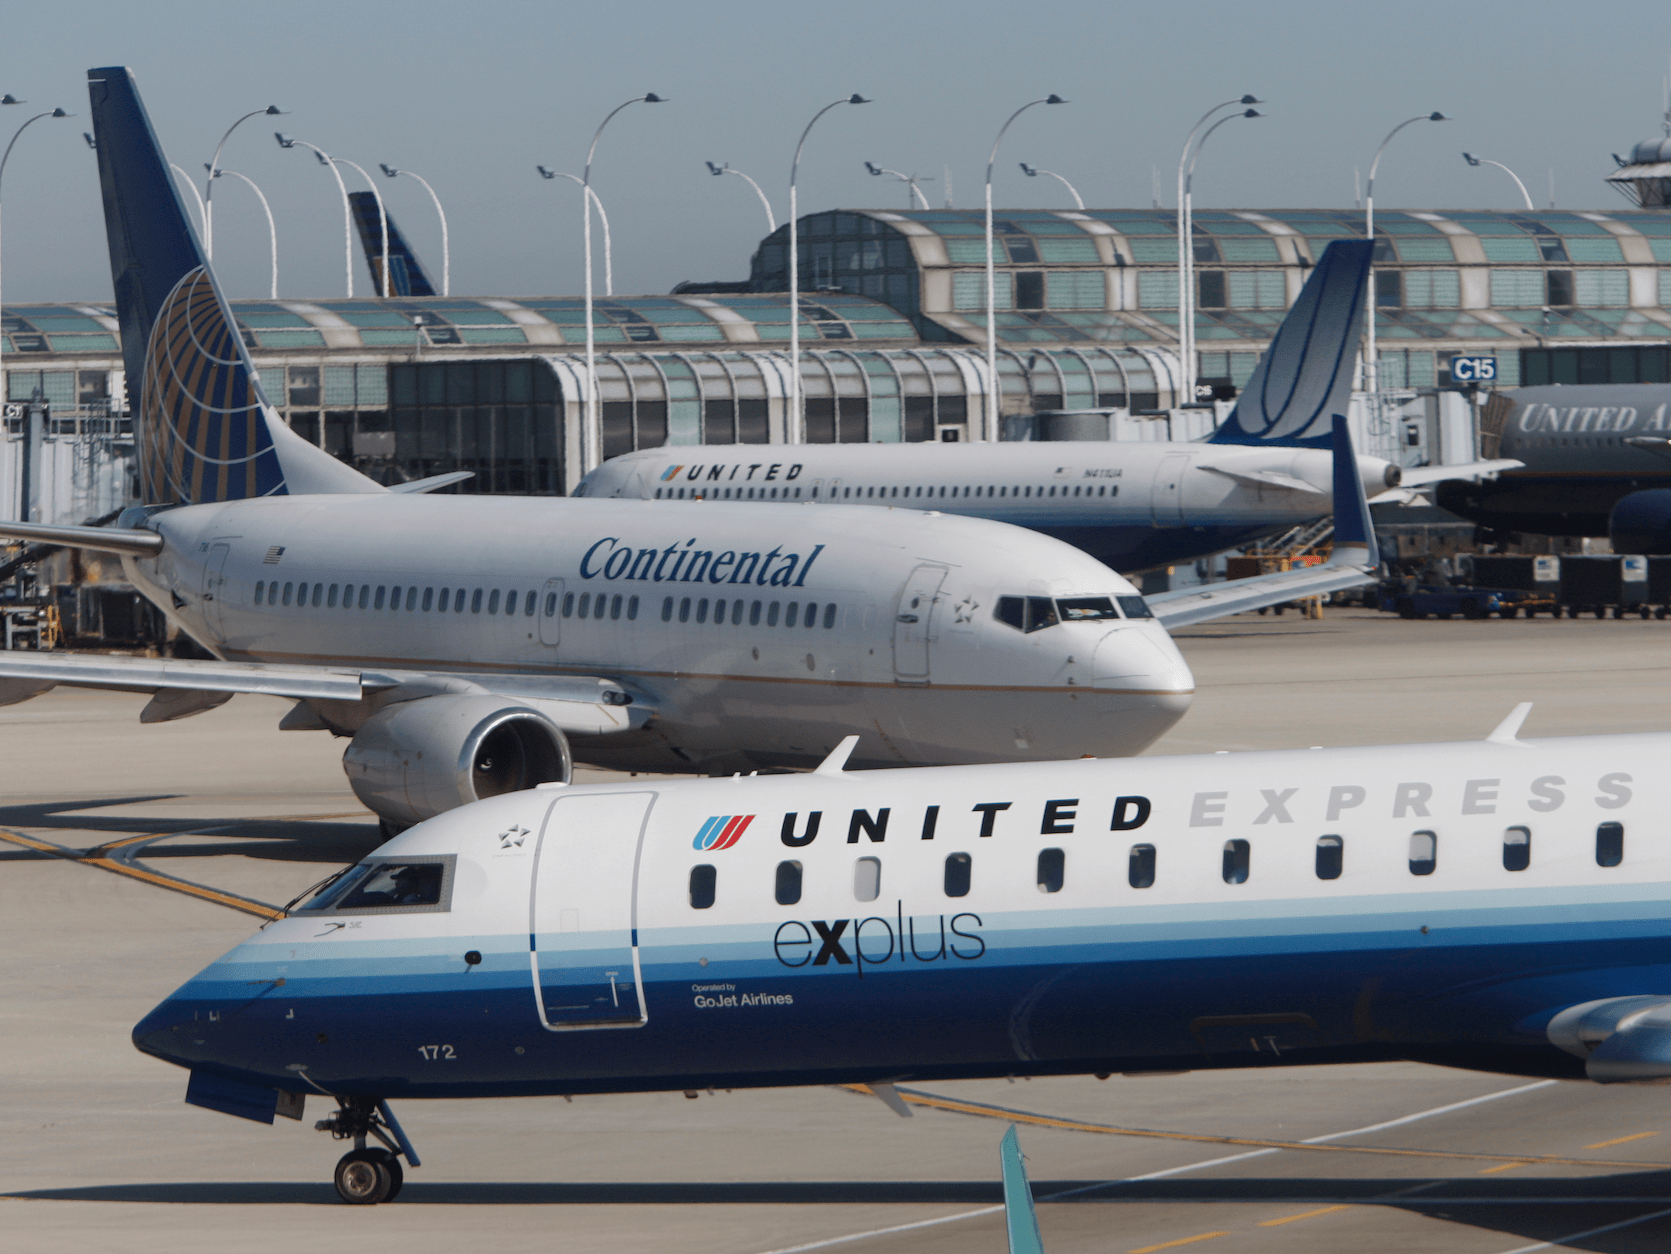 United CEO Munoz is leading the company's turnaround ...